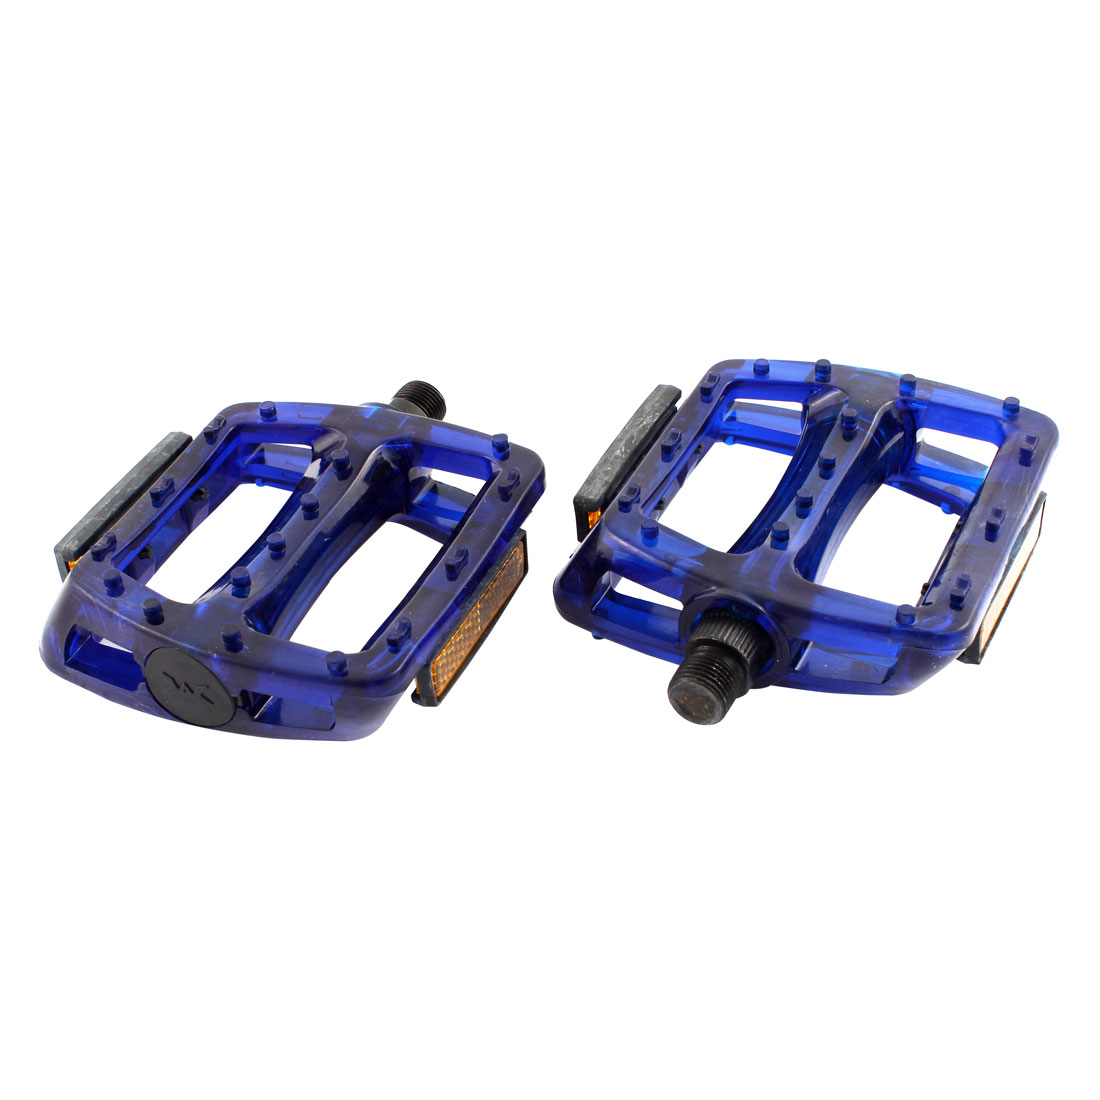 2 Pcs Fixed Gear Bike Bicycie Royal Blue Metal Platform Pedal Part